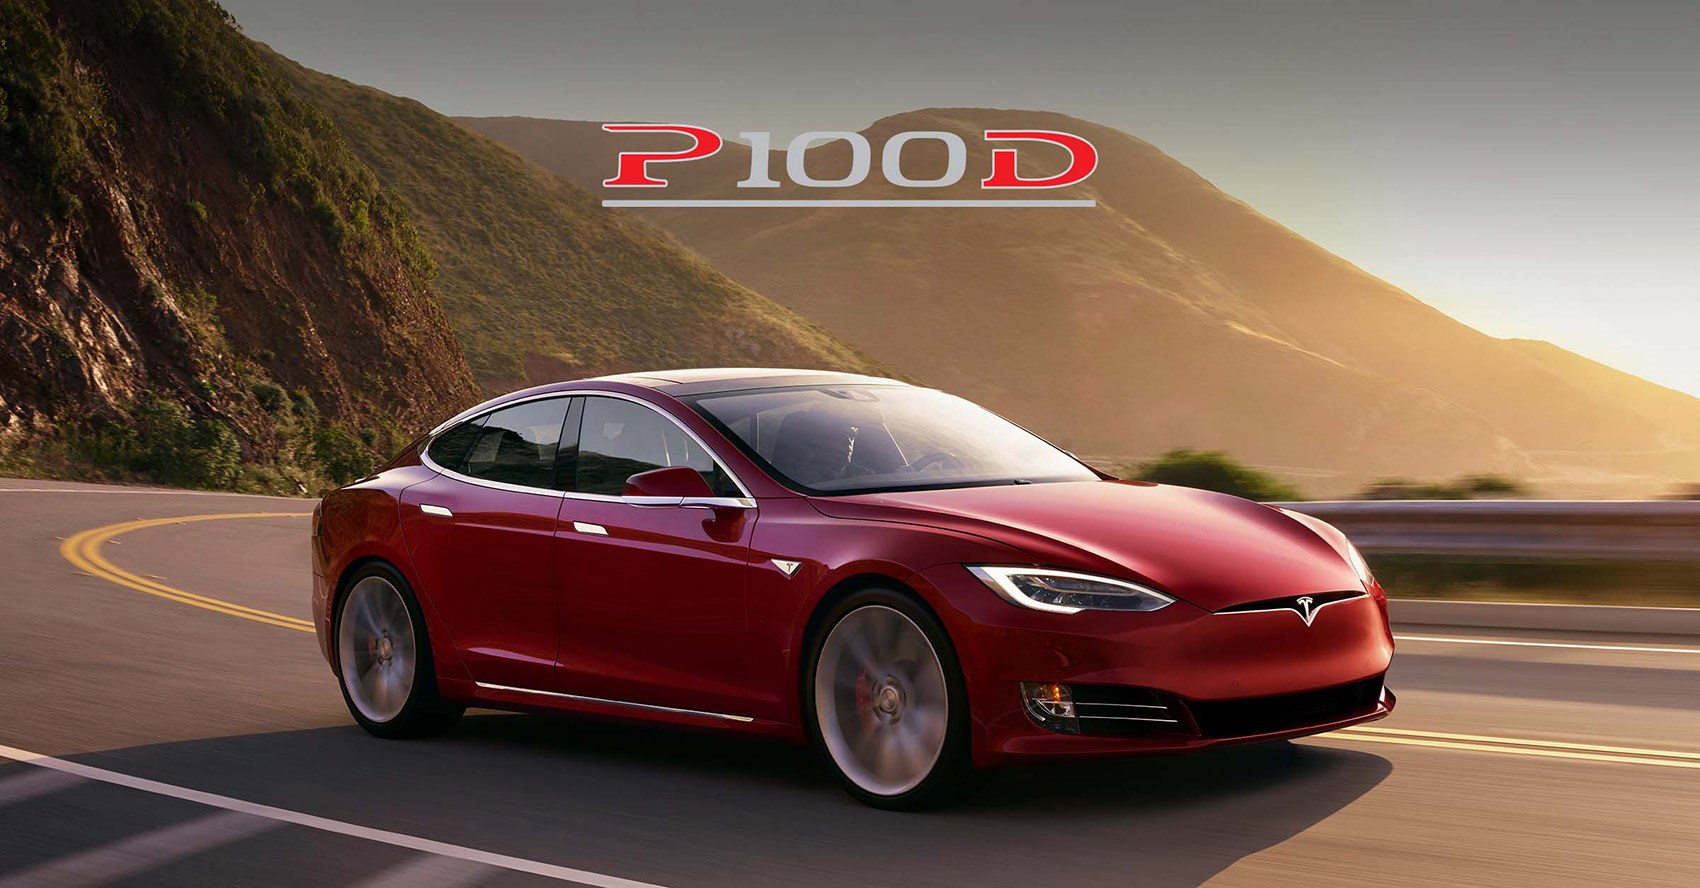 P100d Battery Pack Also Available With Tesla Model X